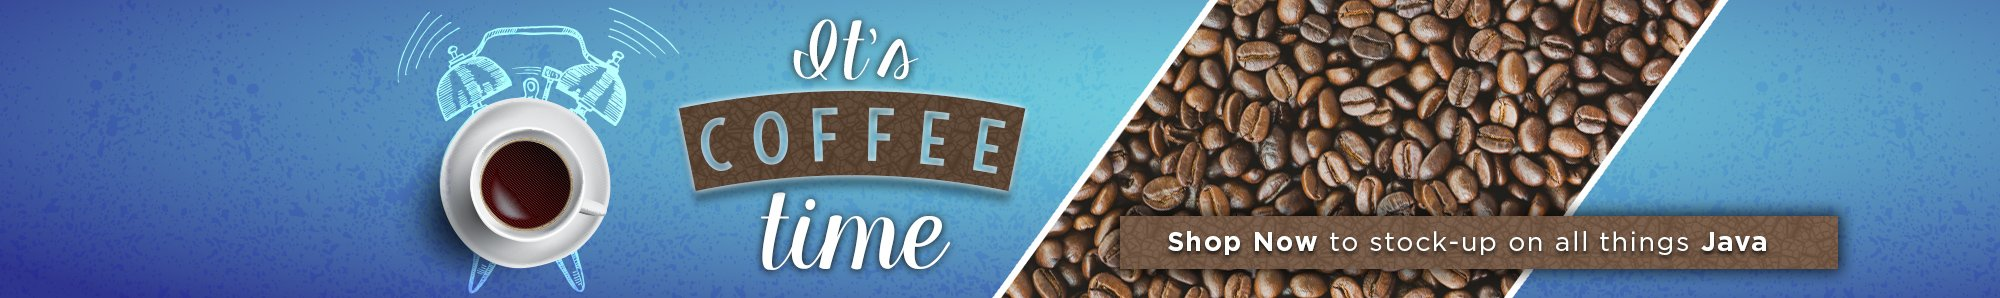 It's coffee time! Shop now to stock up on all things java at OfficeZilla.com!